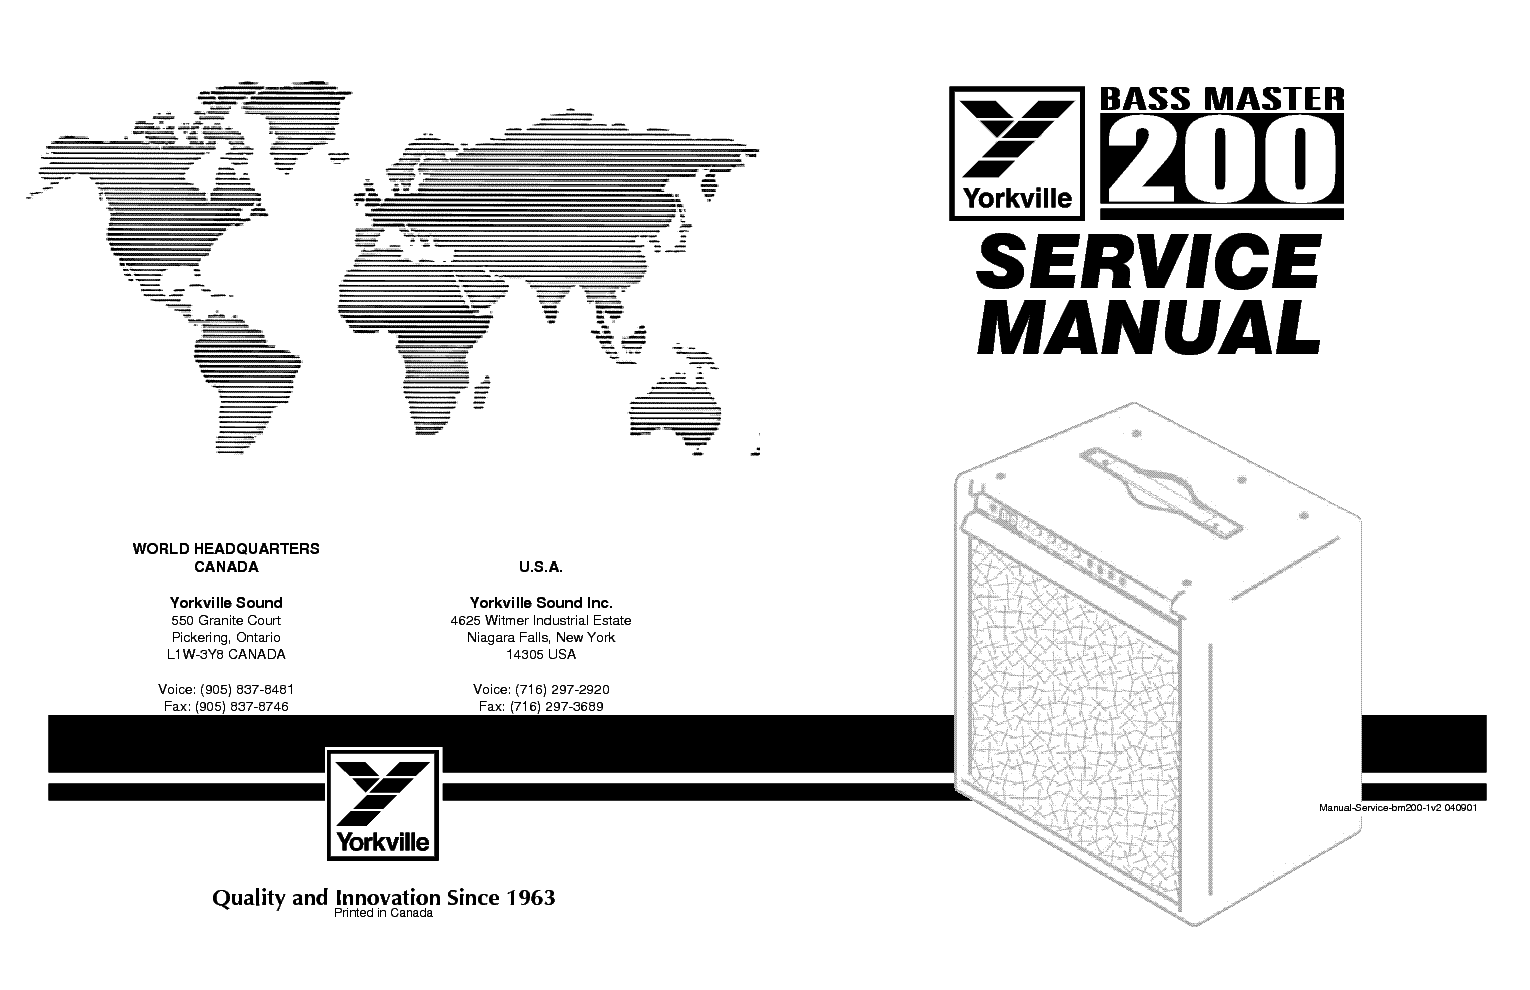 YORKVILLE BASS MASTER 200 service manual (1st page)